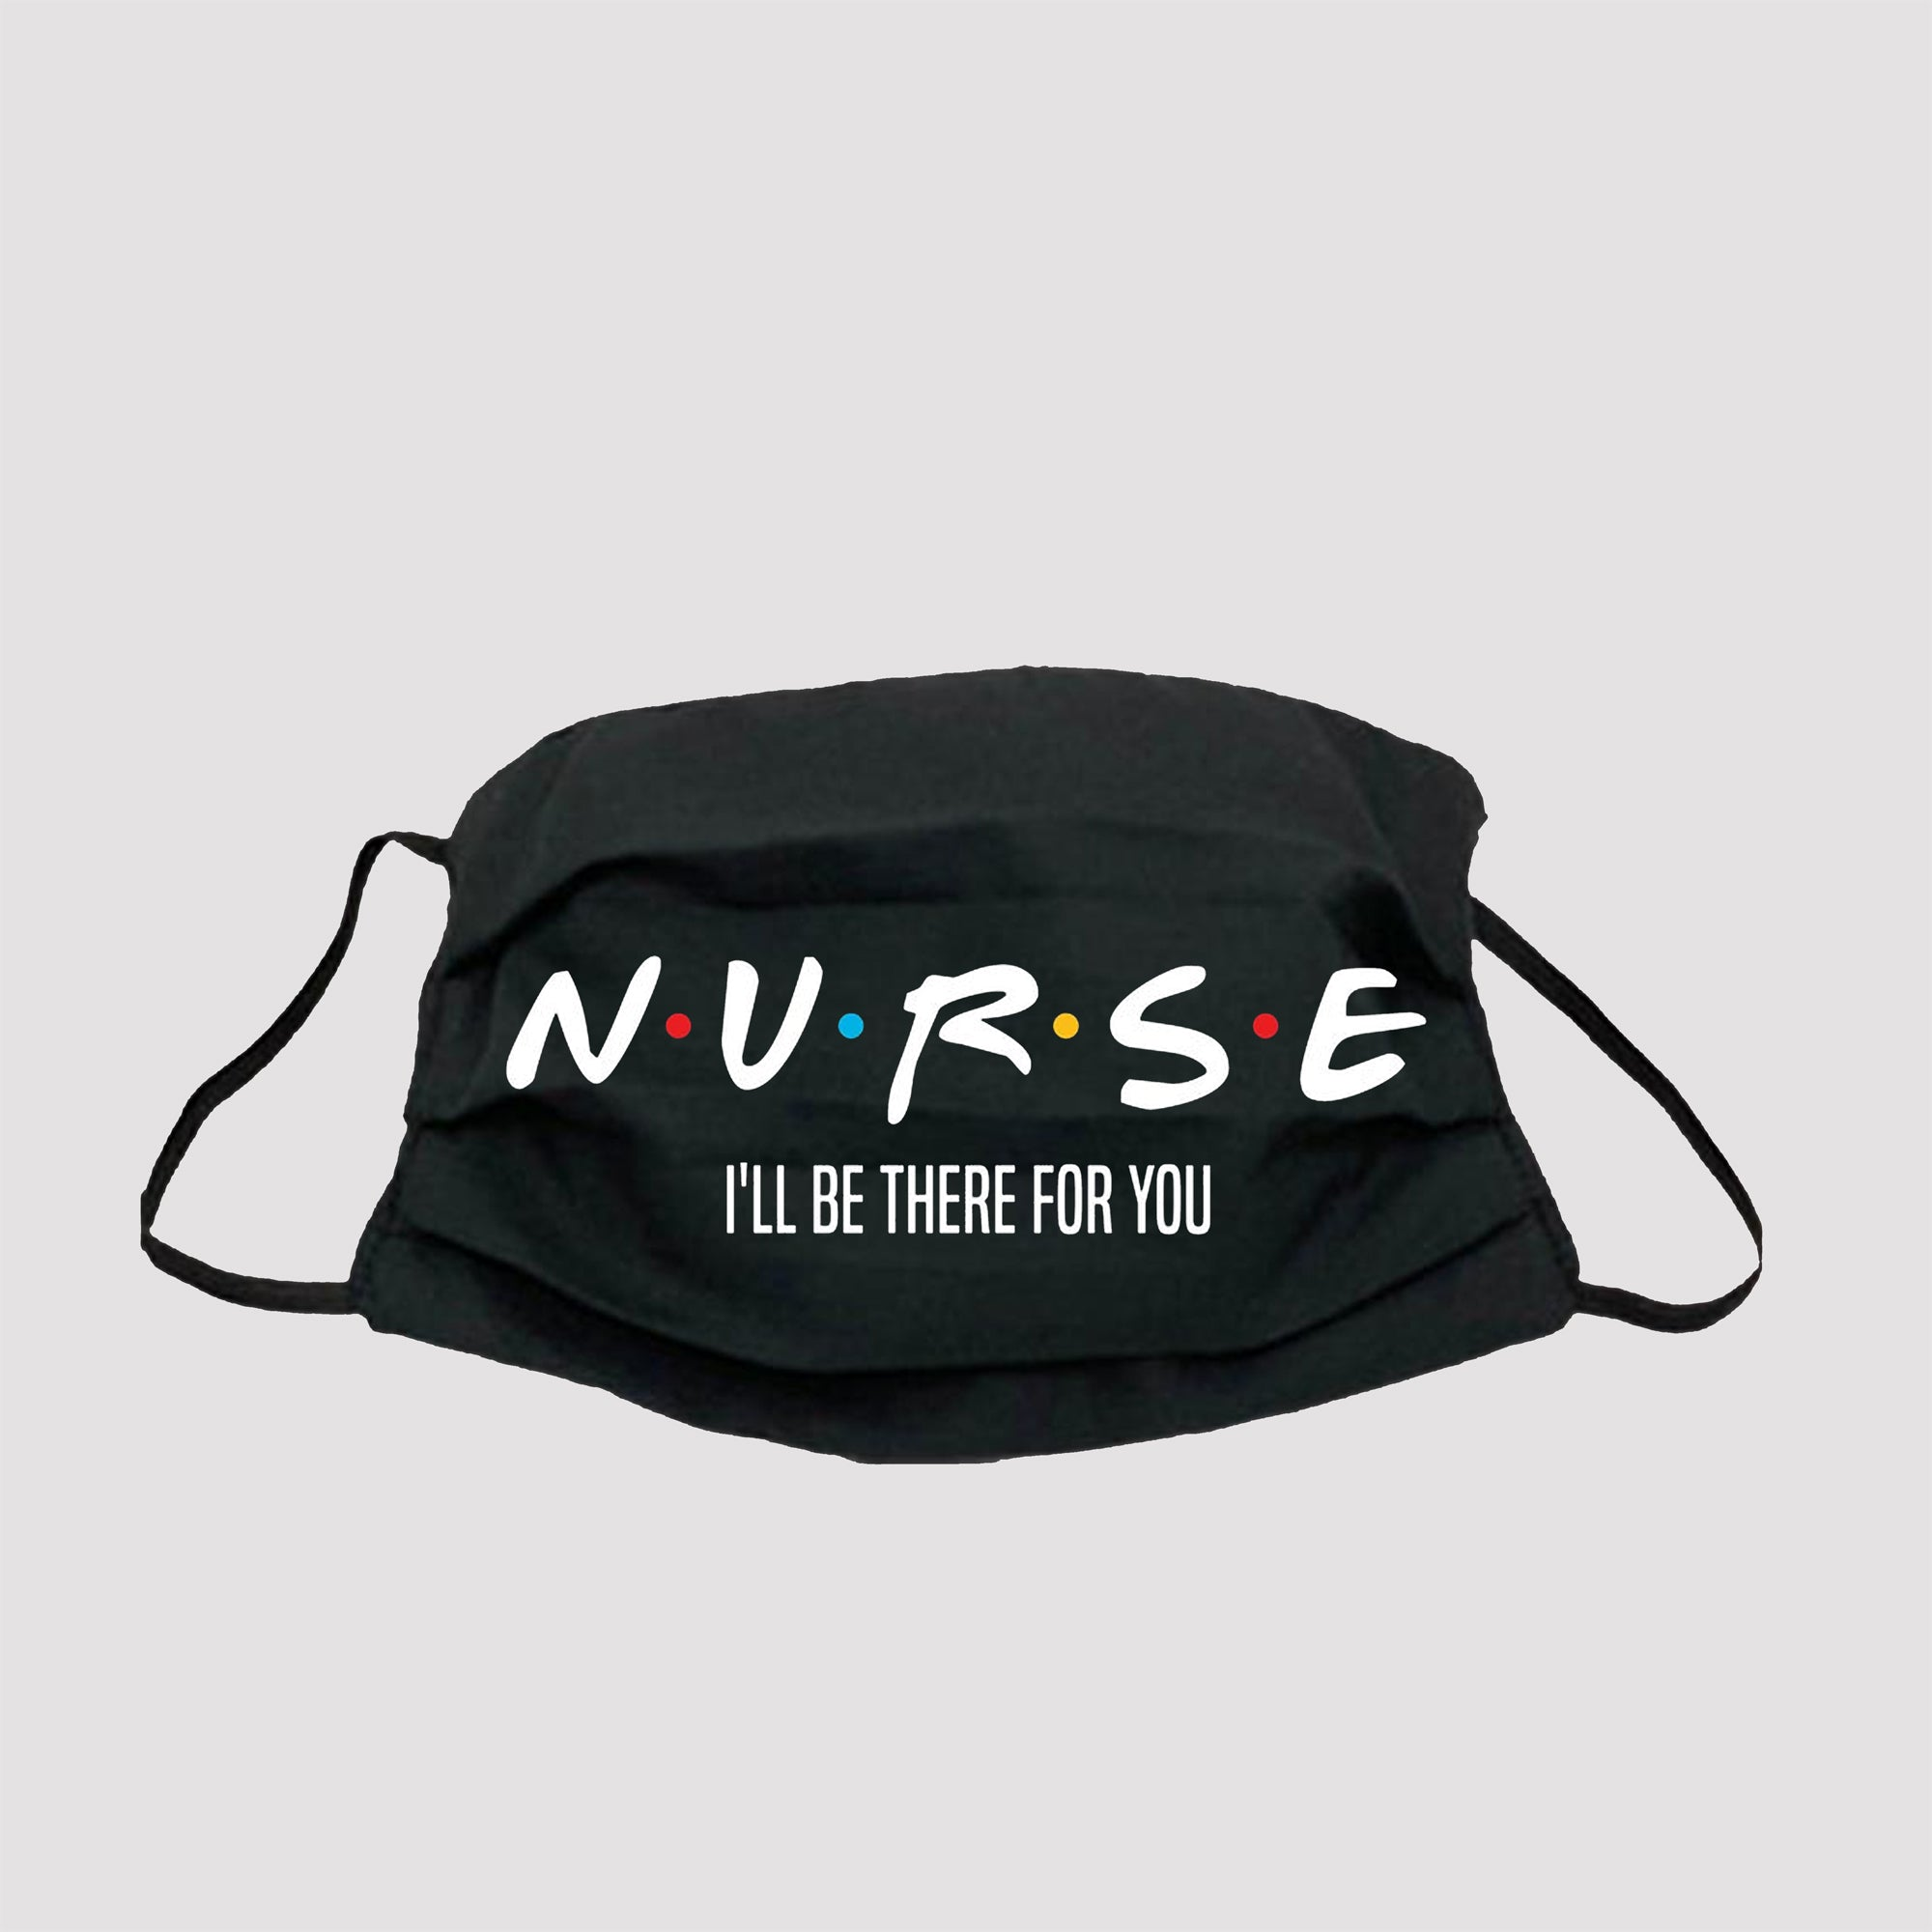 Nurse I'll Be There For You